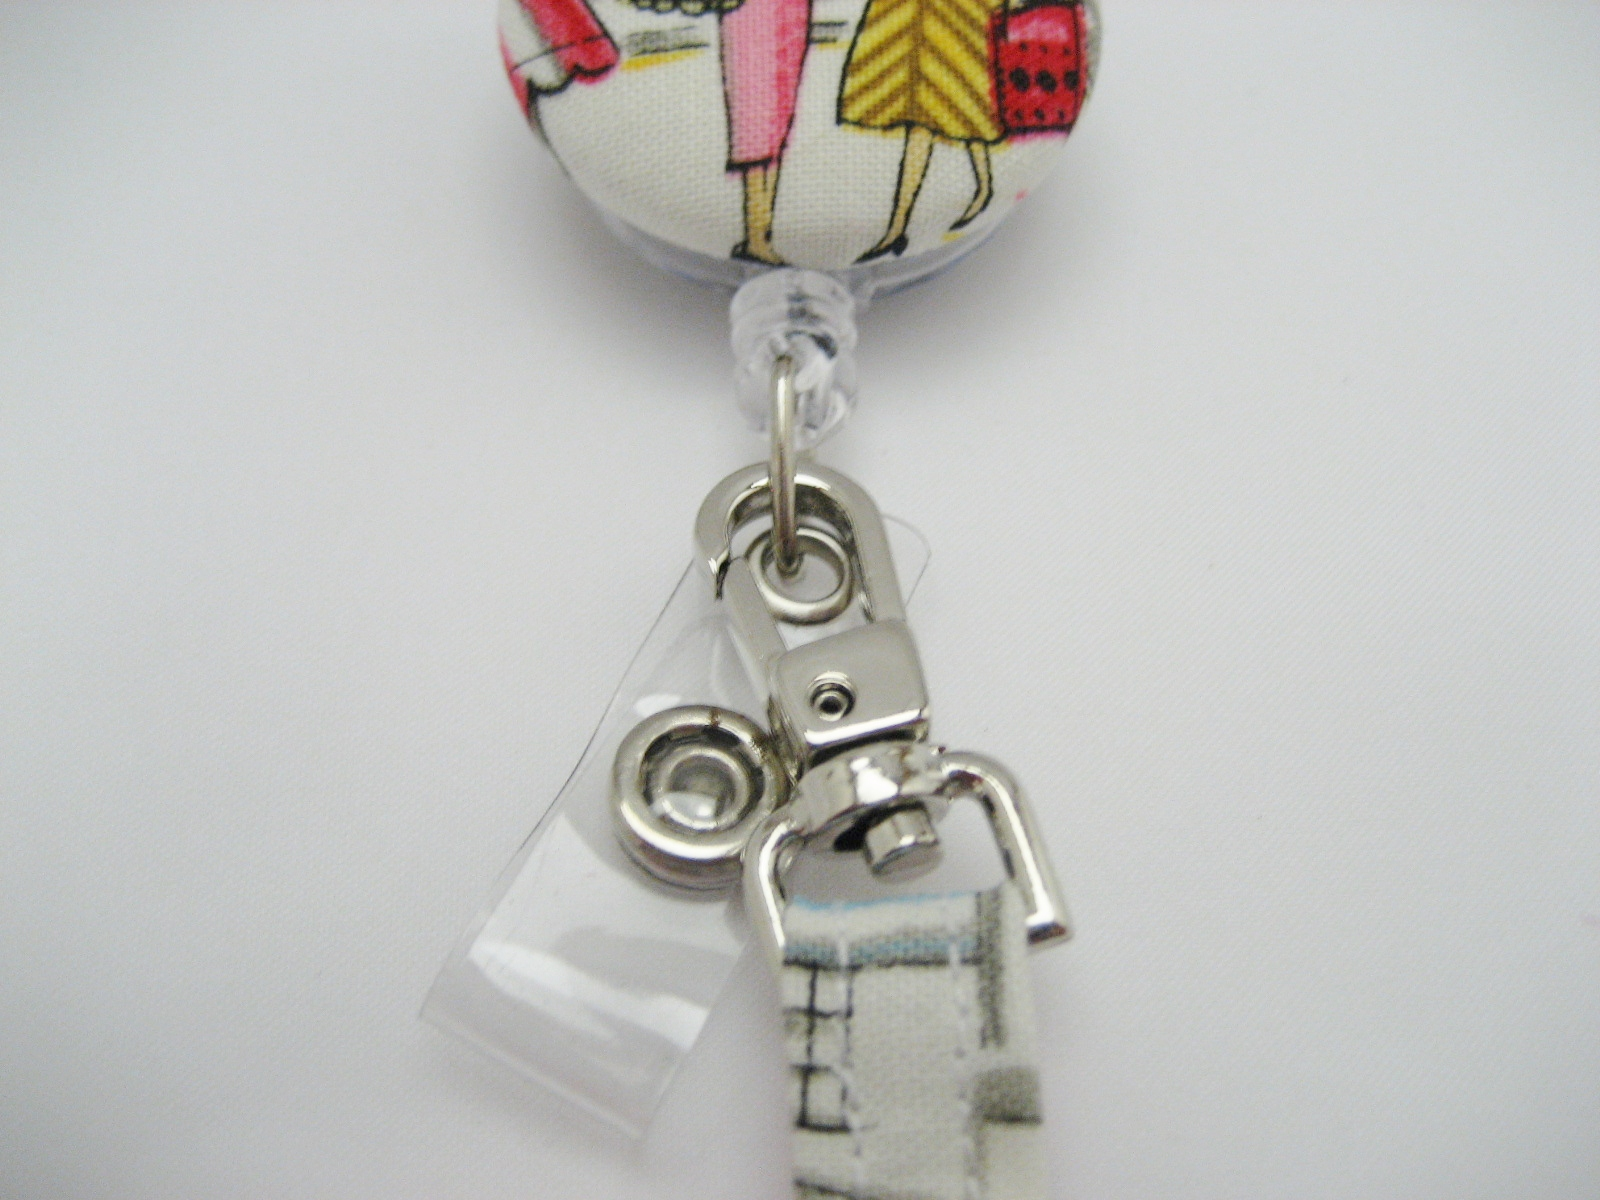 Self cover button badge reel tutorial all wrapped up now you have a matching badge reel for you sandi id wallet or you can have a matching wallet for your badge reel if you go and make one now solutioingenieria Gallery